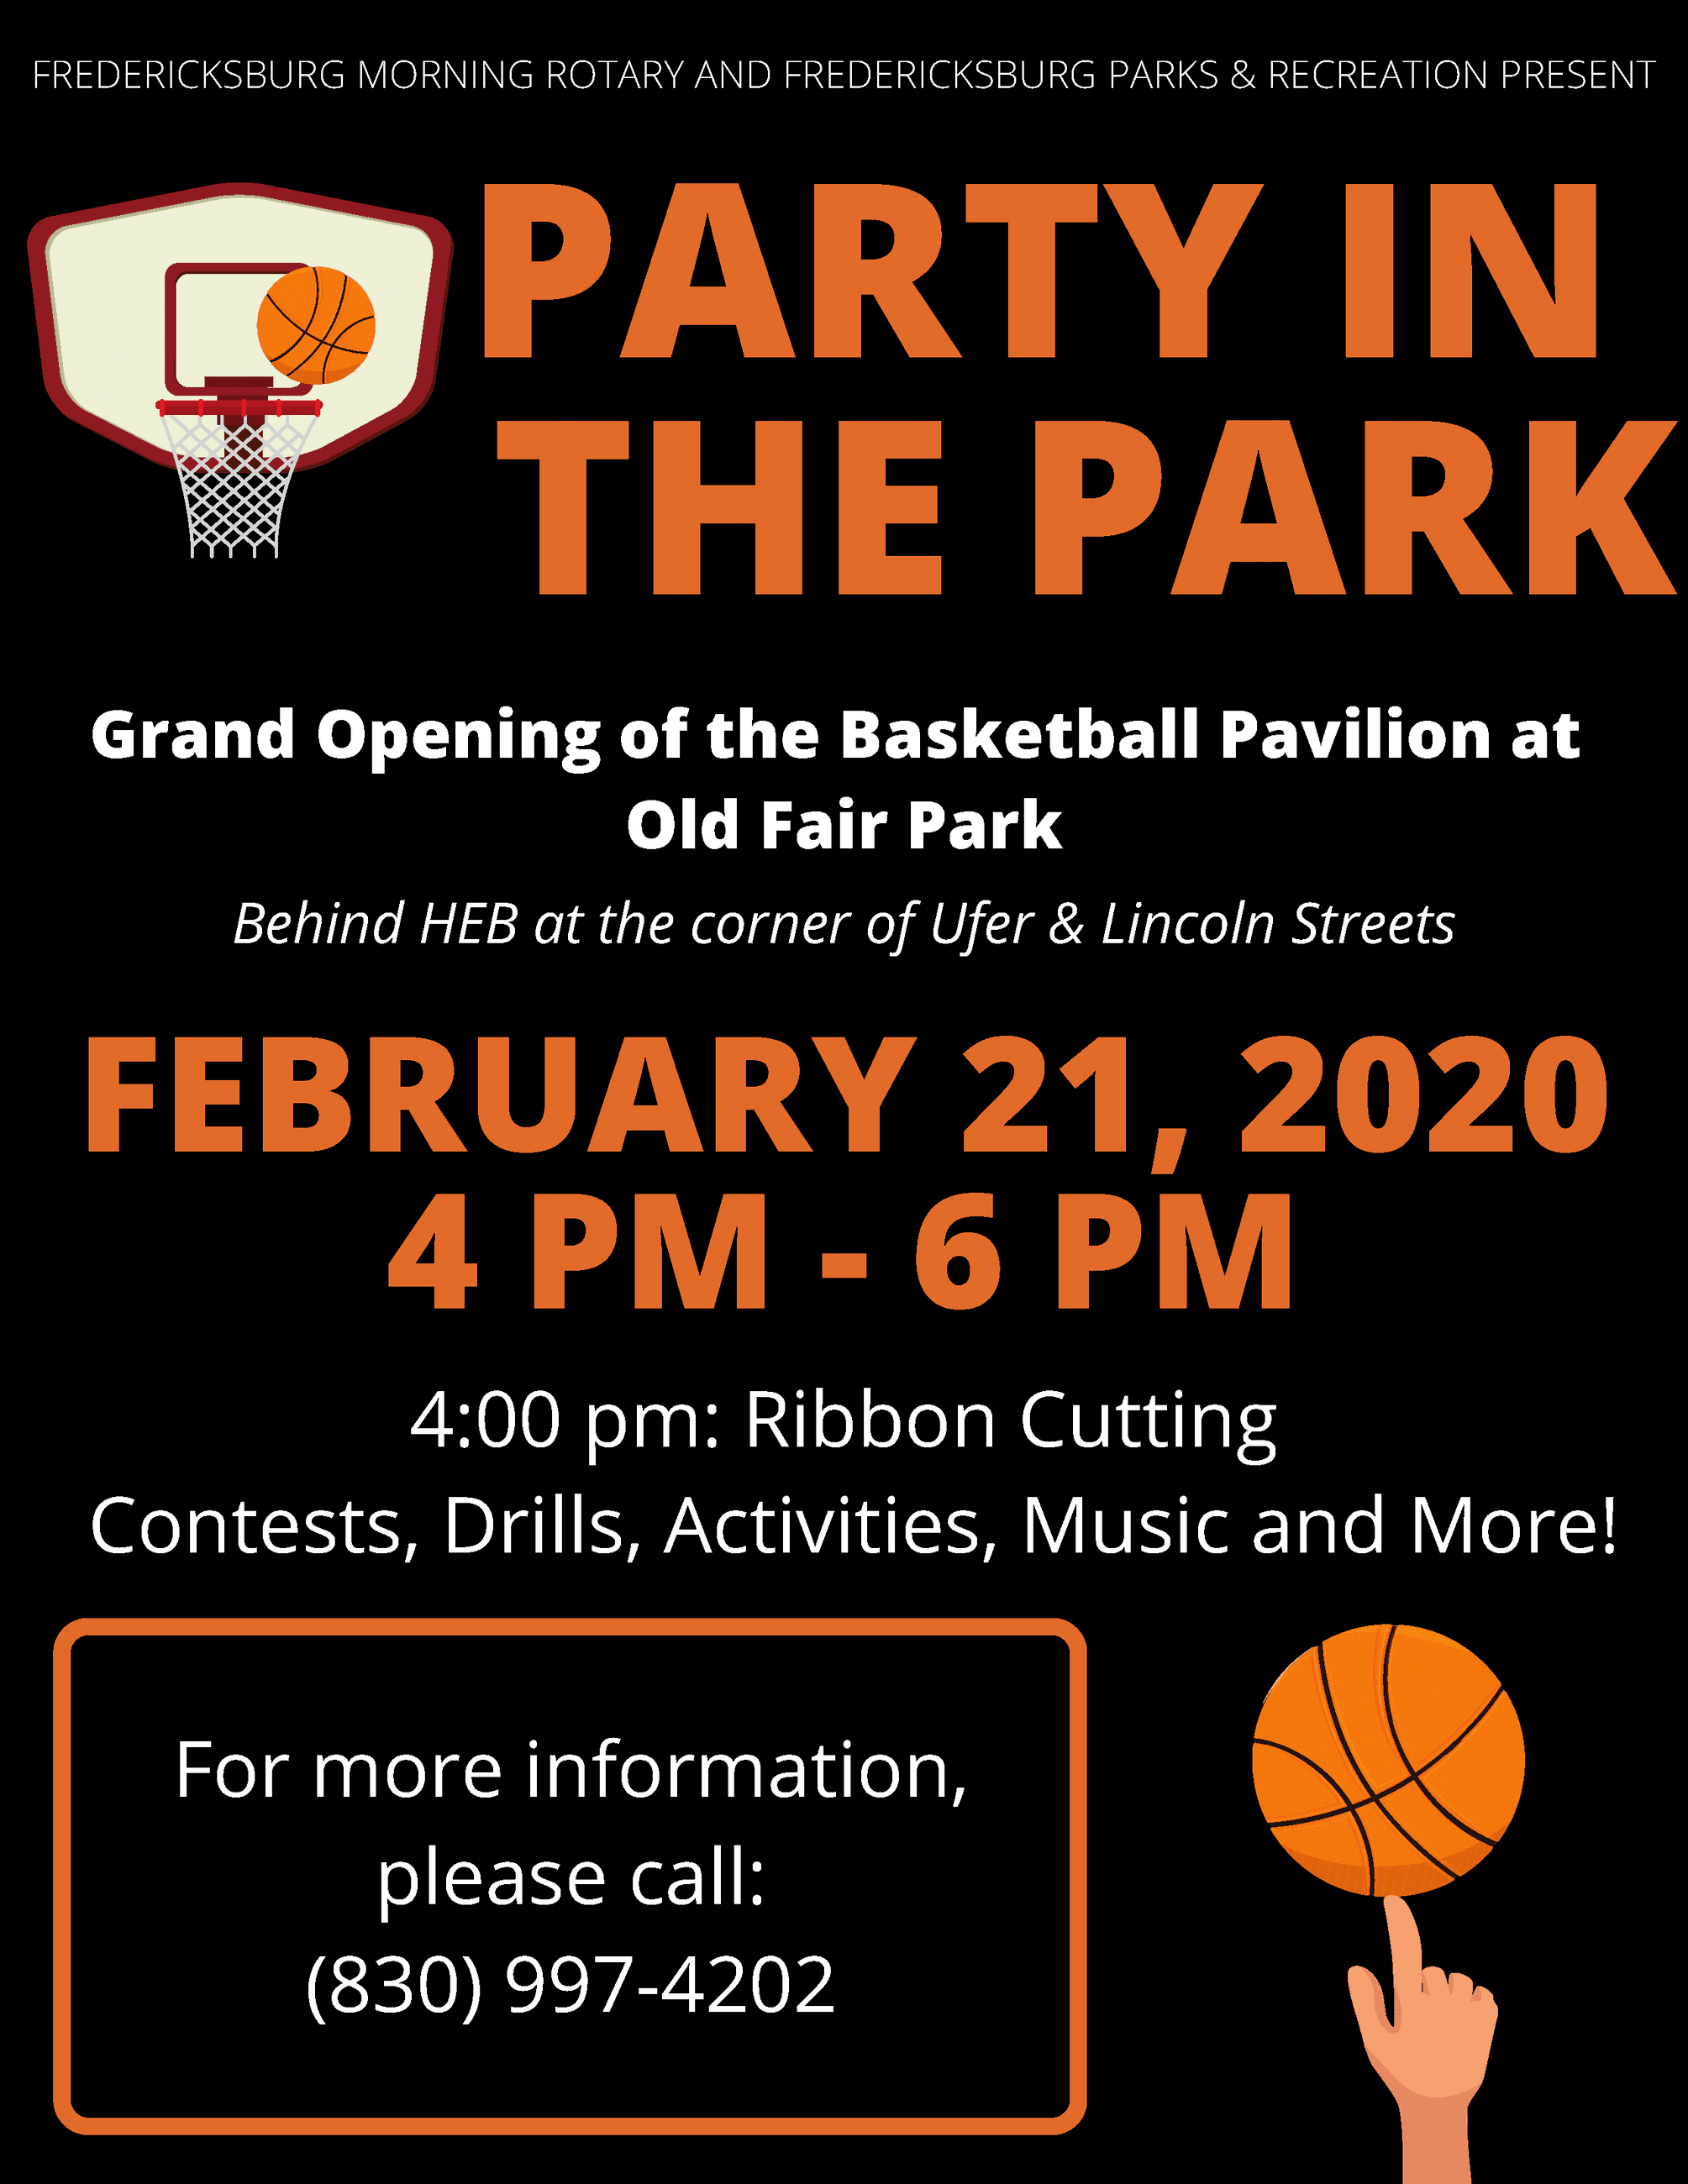 Party in the Park Flyer